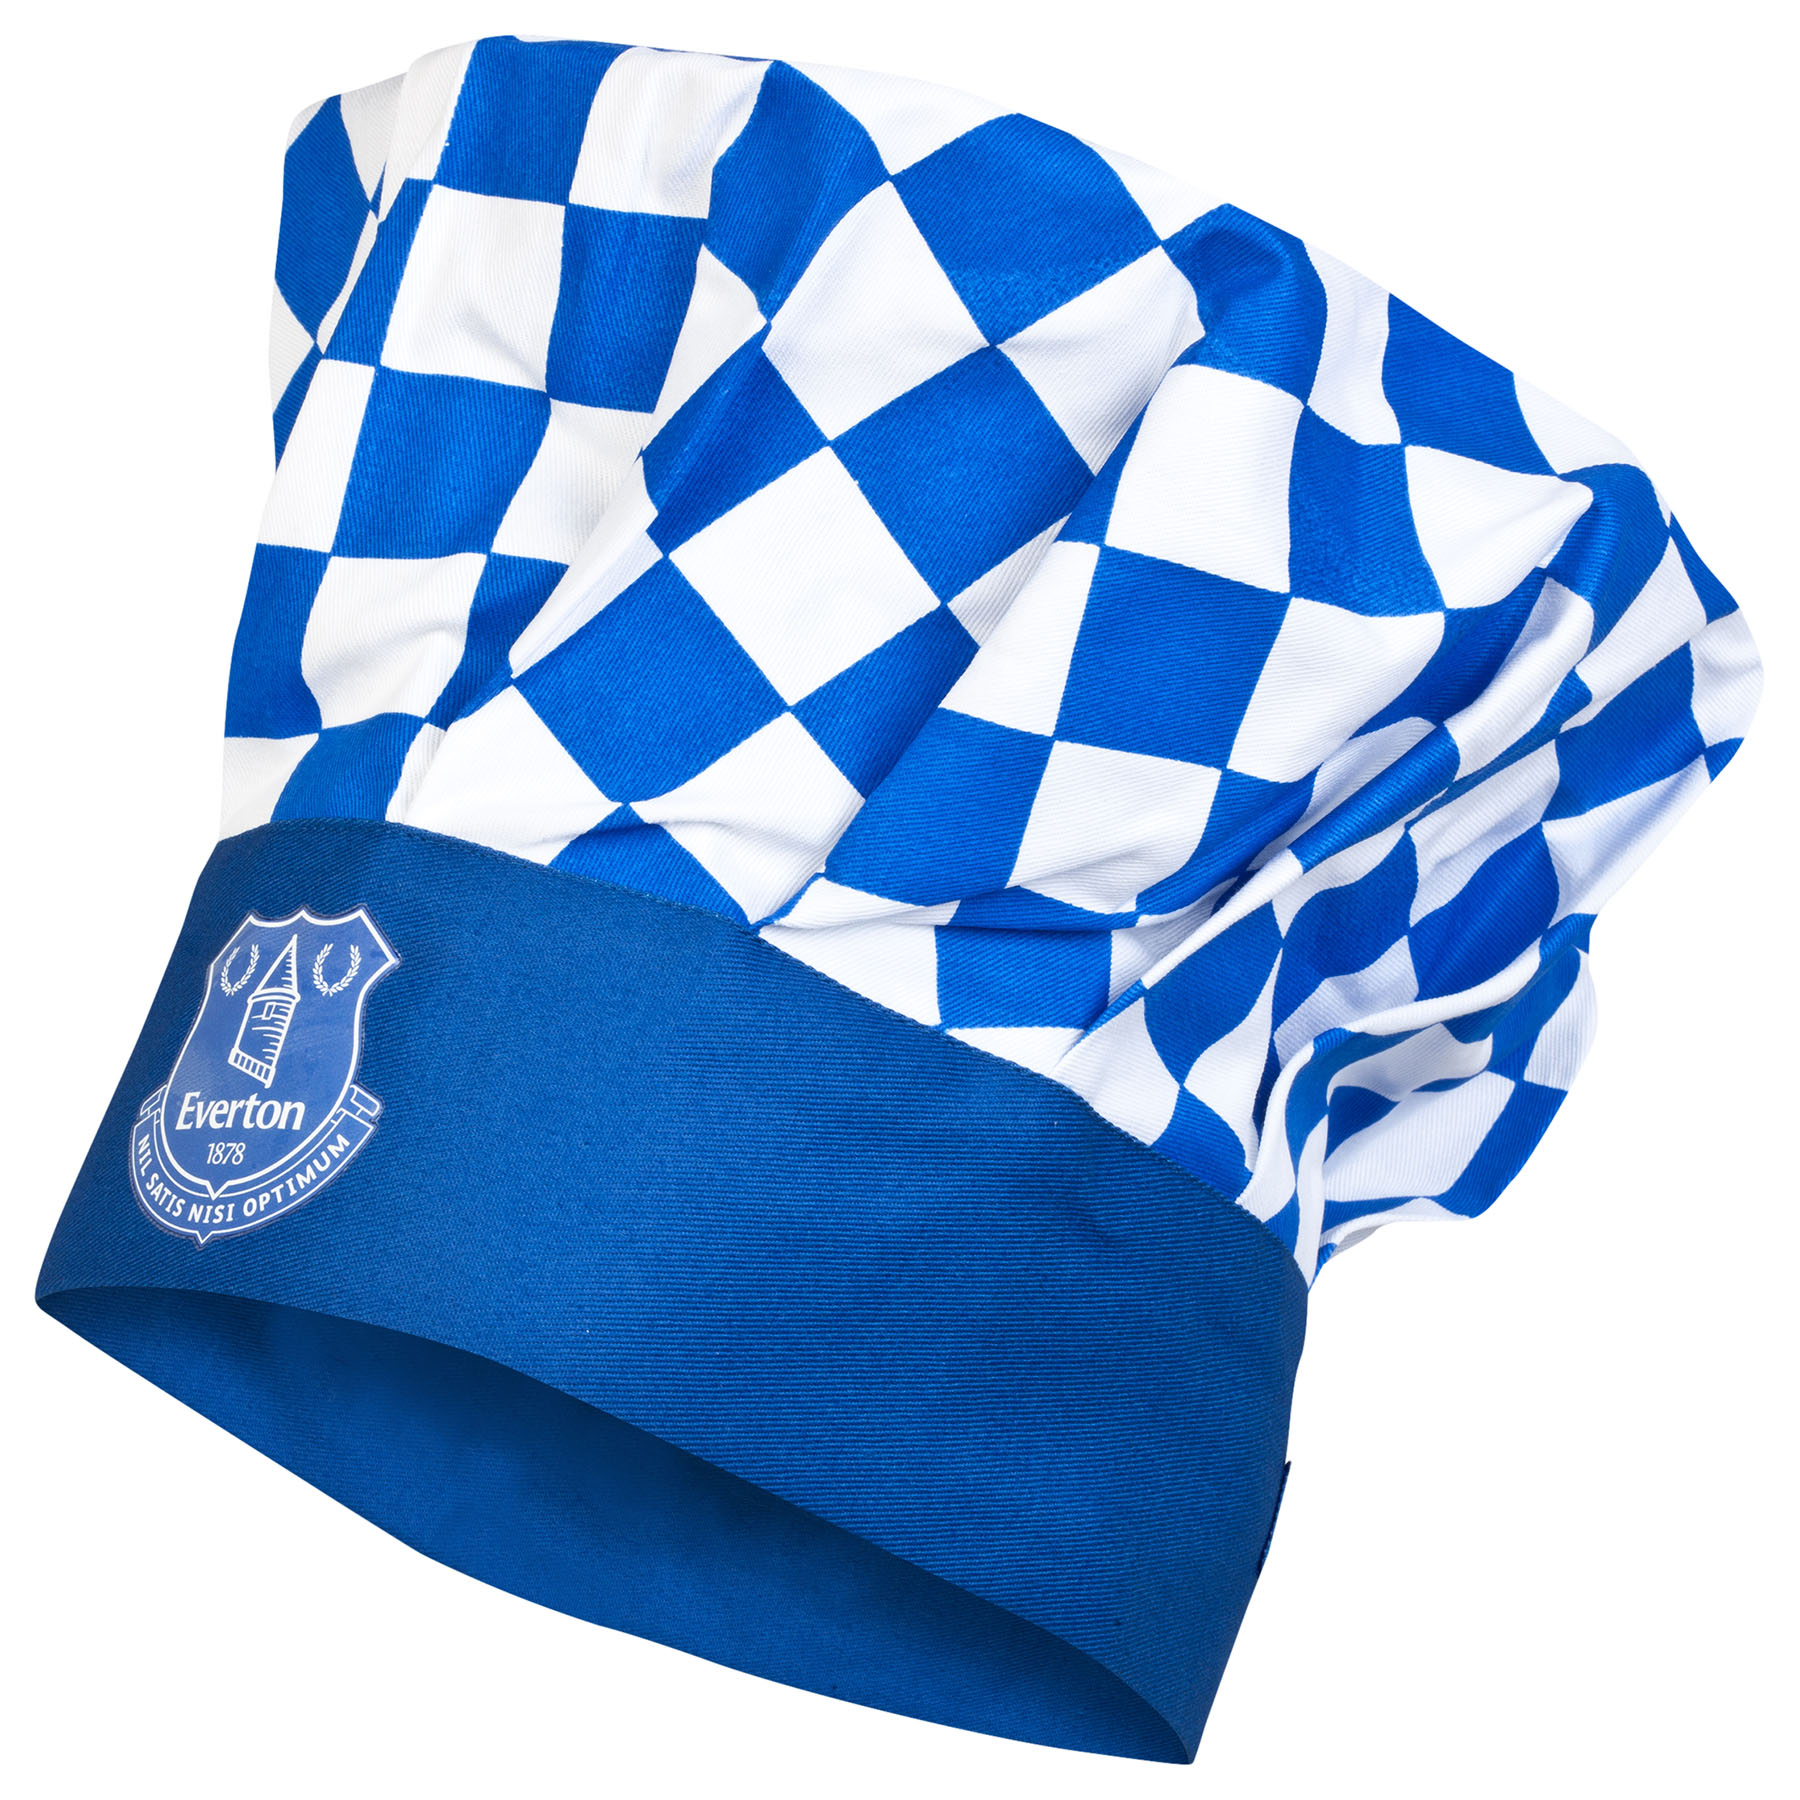 Everton Chefs hat